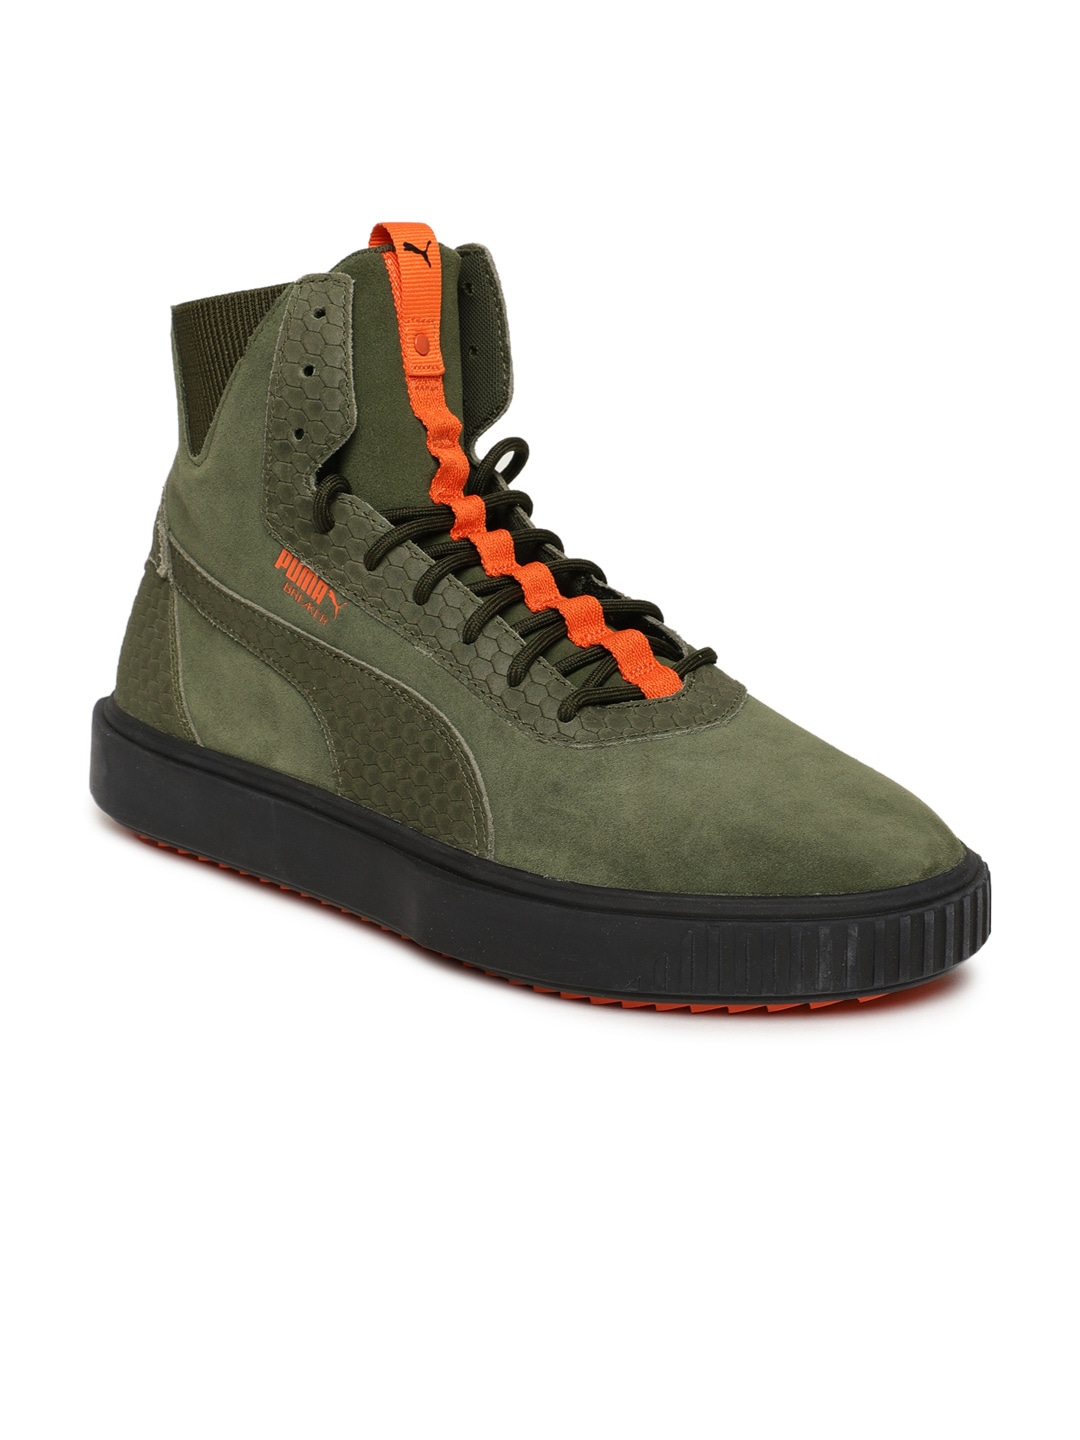 In Shoes Puma India Online Buy High Top dtsQCohrxB